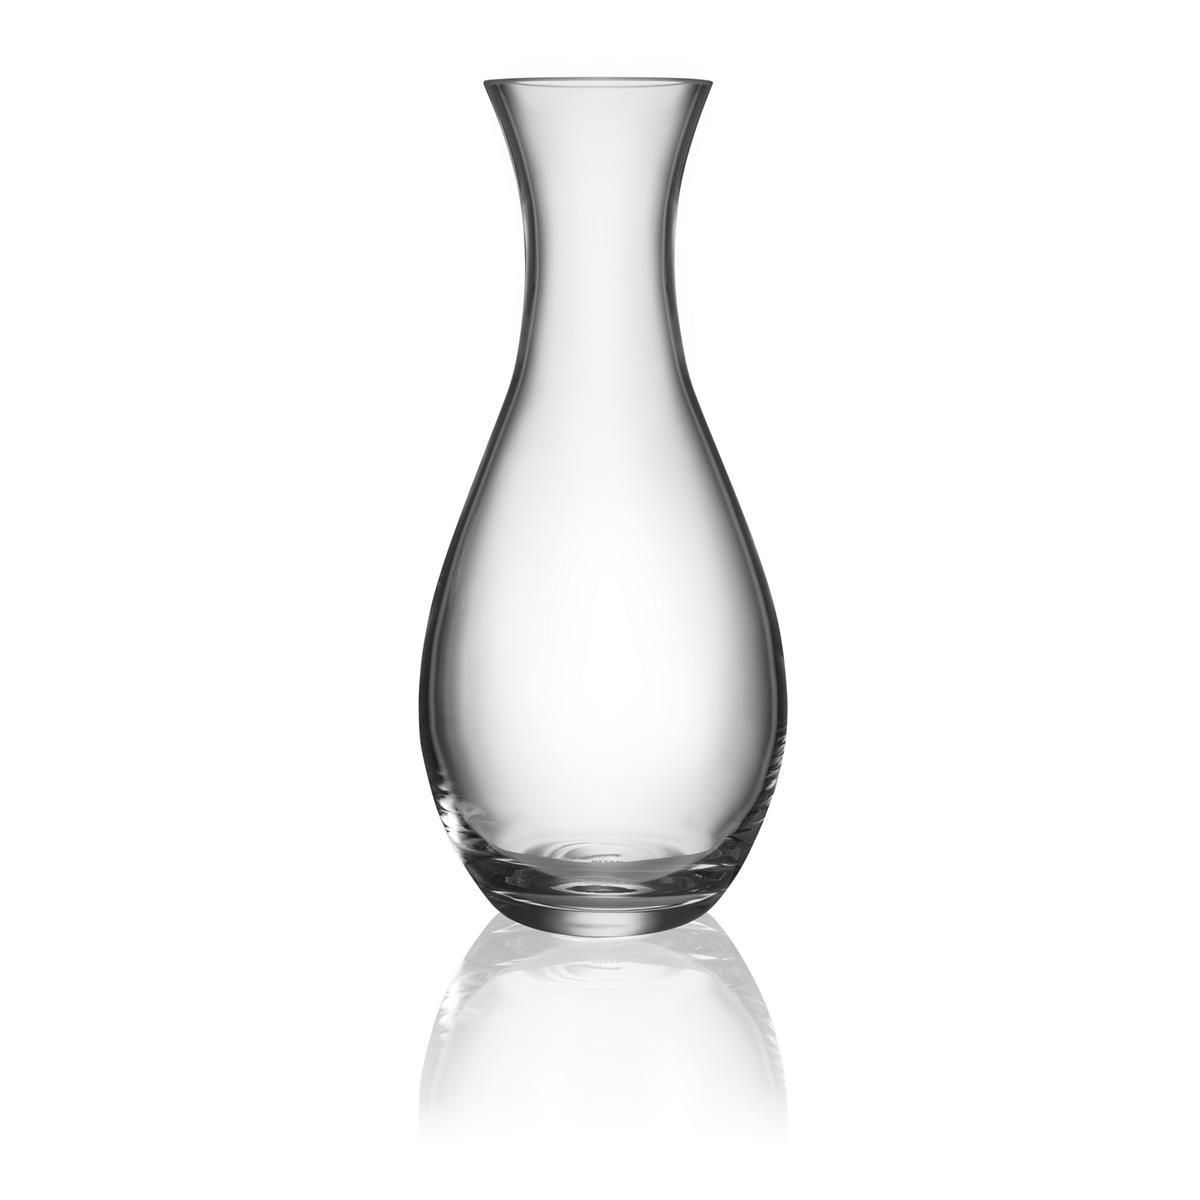 Alessi-Mami Carafe in crystalline glass